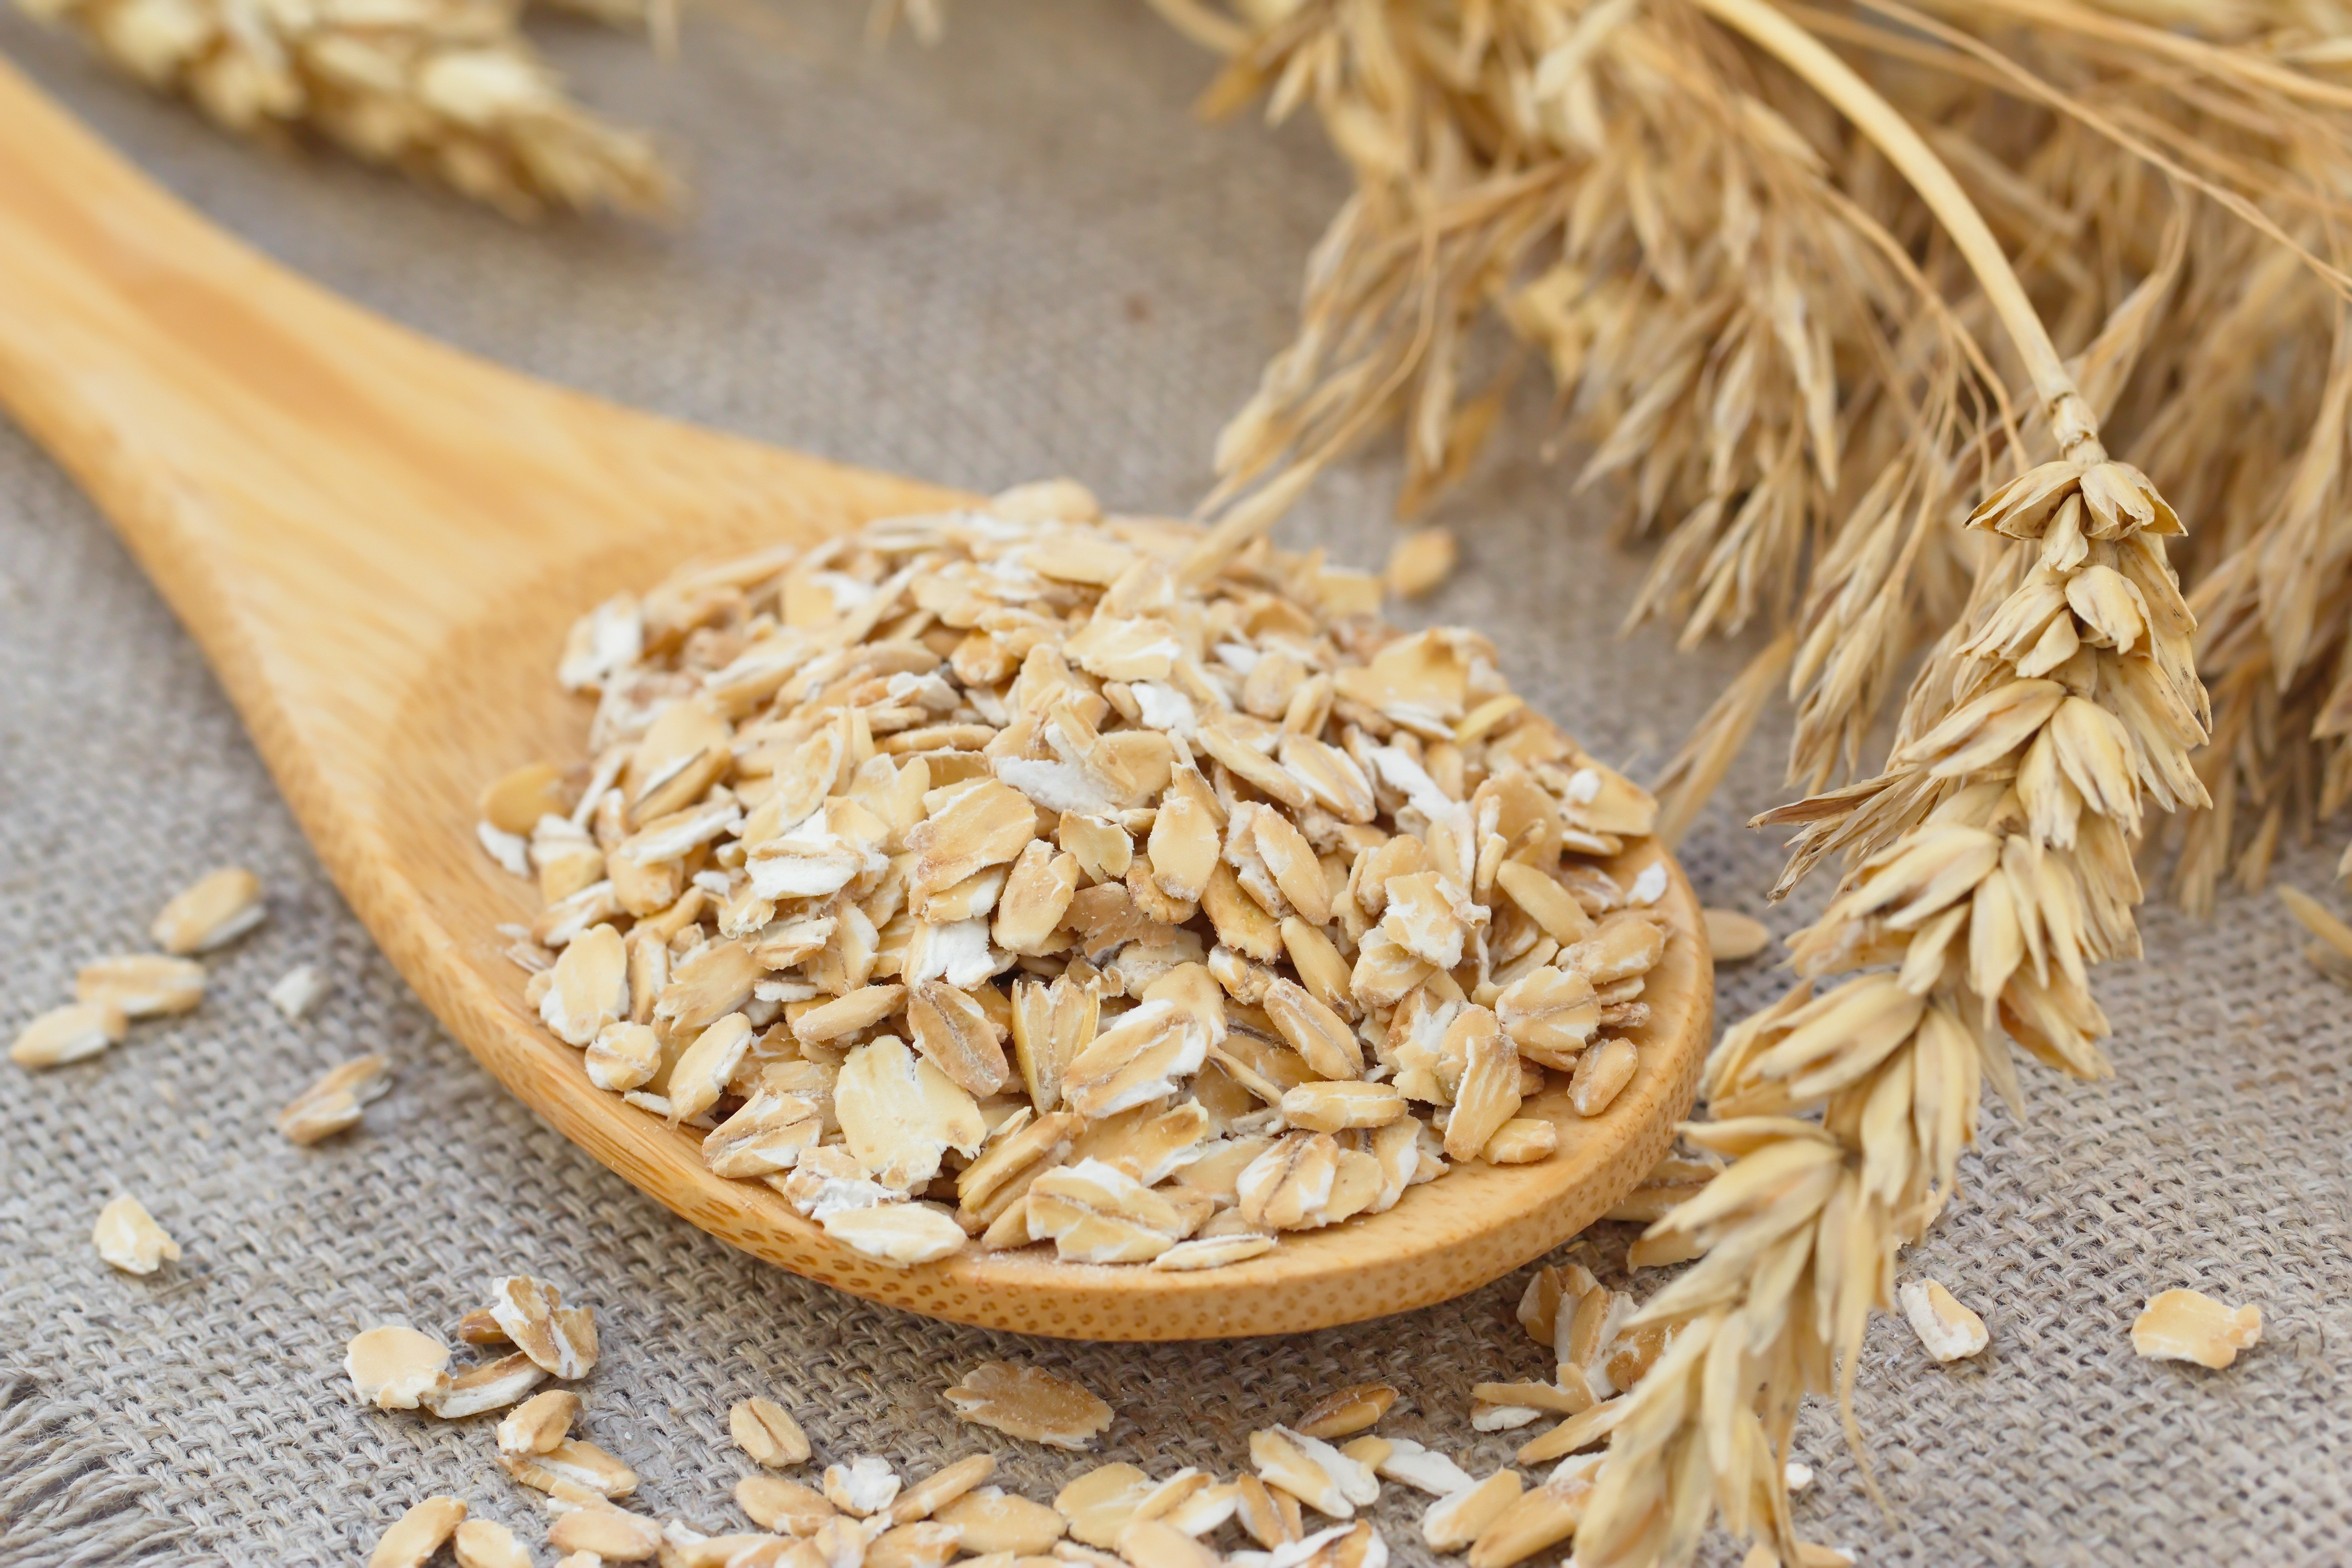 Oats-and-spoon.jpg#asset:702